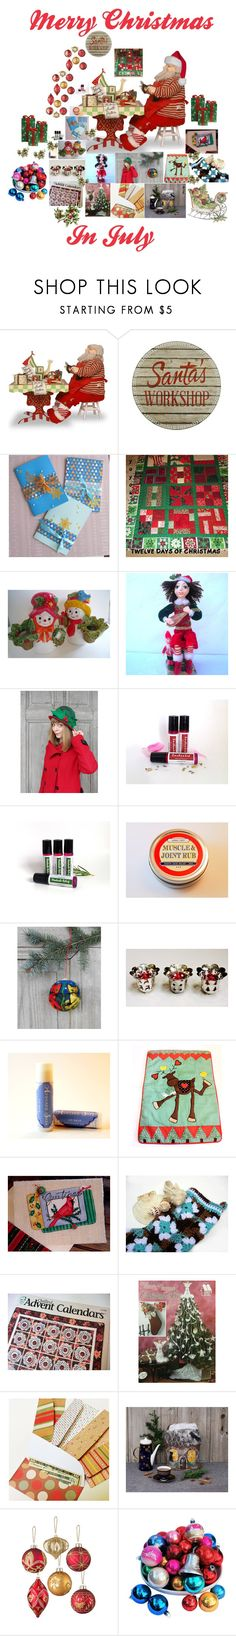 """Merry Christmas In July"" by patchworkcrafters ❤ liked on Polyvore featuring interior, interiors, interior design, home, home decor, interior decorating, National Tree Company, International Silver and Improvements"